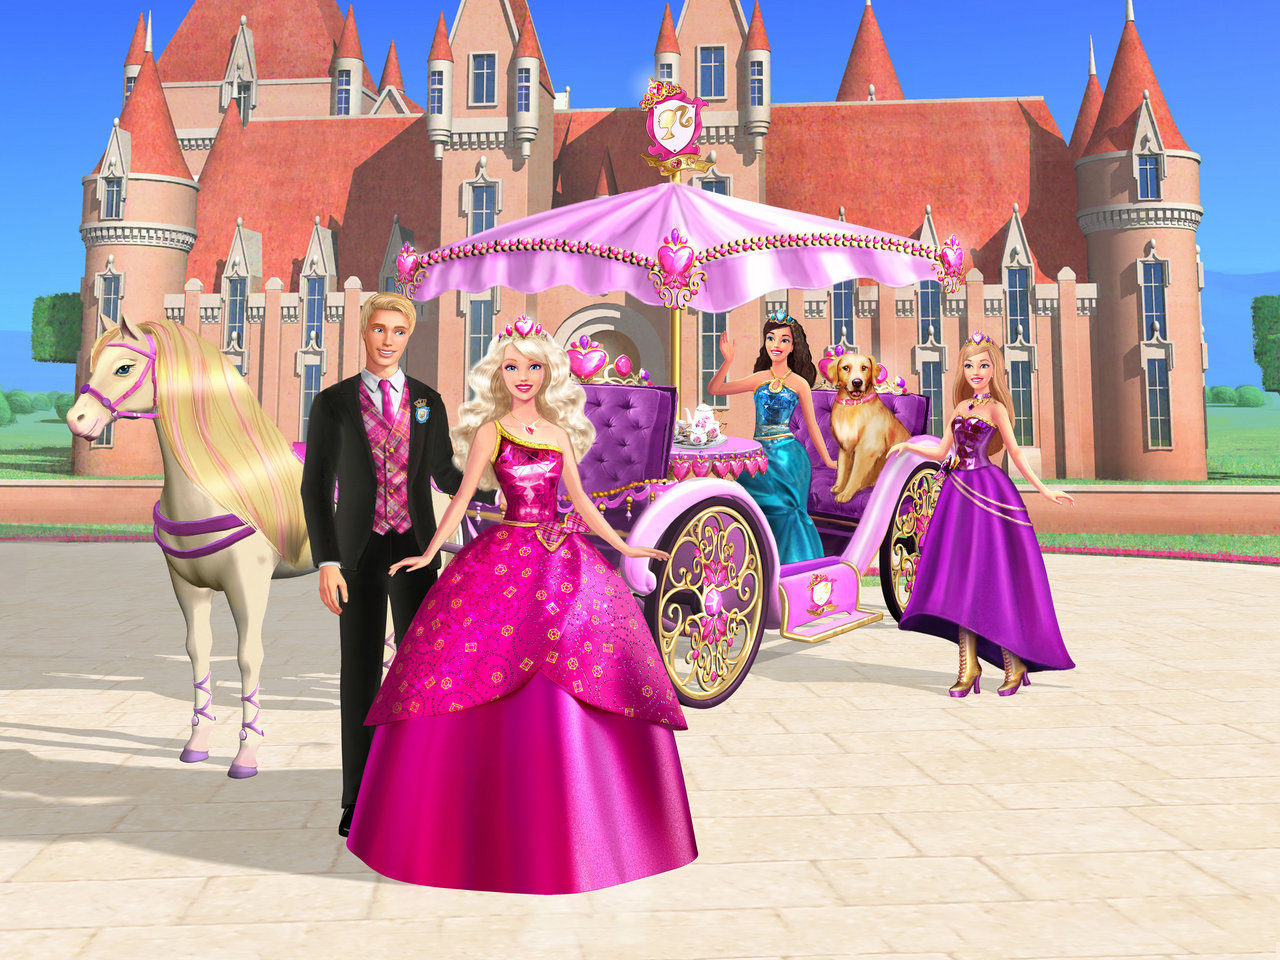 pelculas de barbie imgenes Princess Charm School Stills HD fondo 1280x960